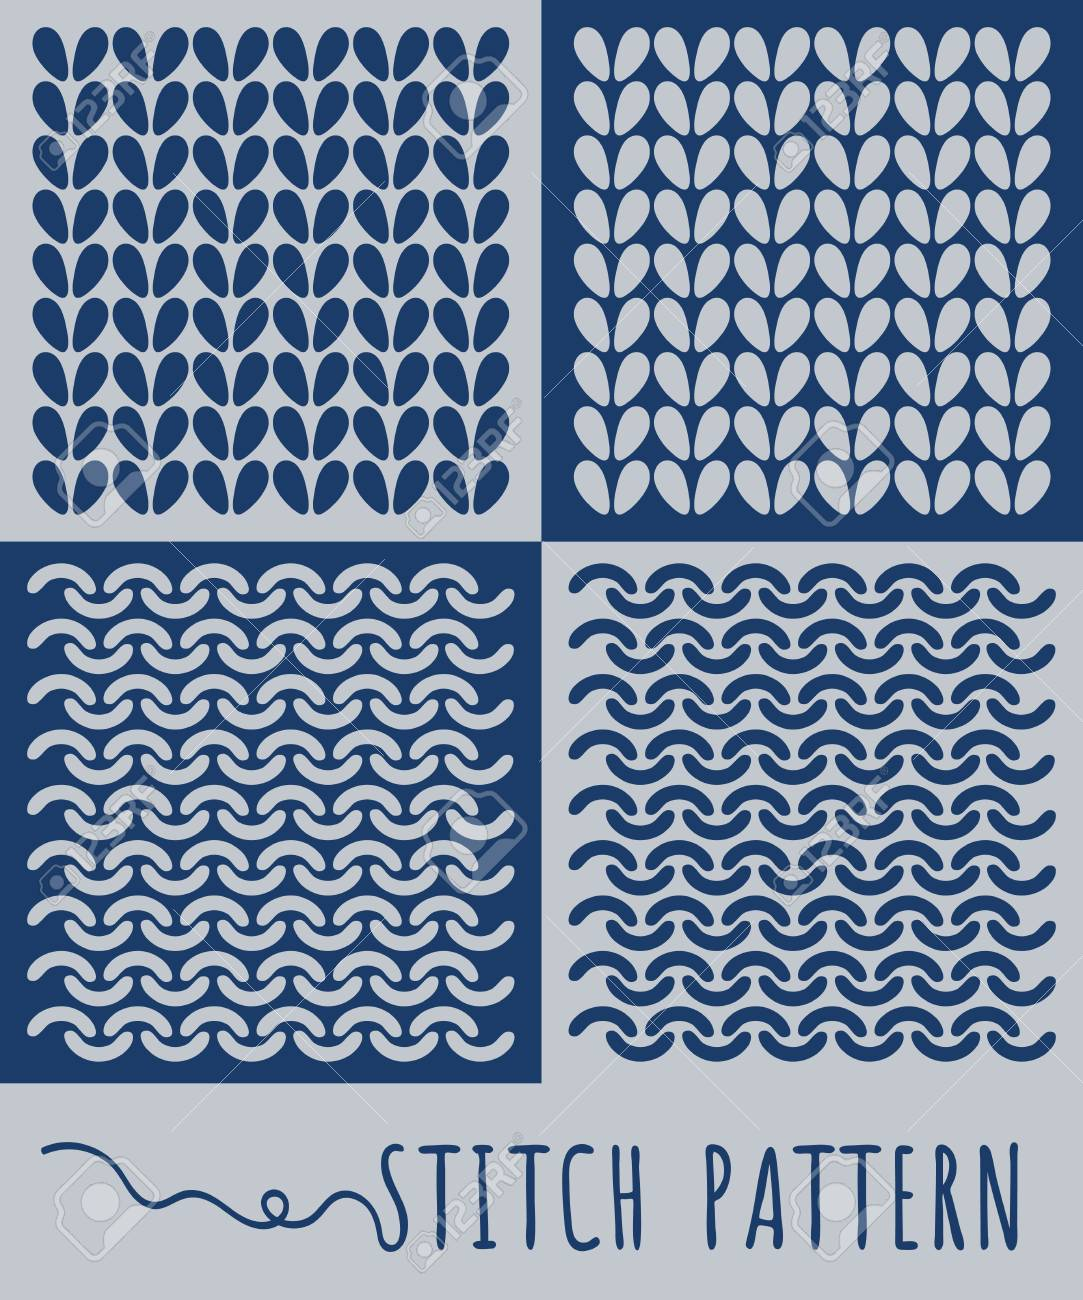 Knitting Stitch Pattern Set Royalty Free Cliparts, Vectors, And ...